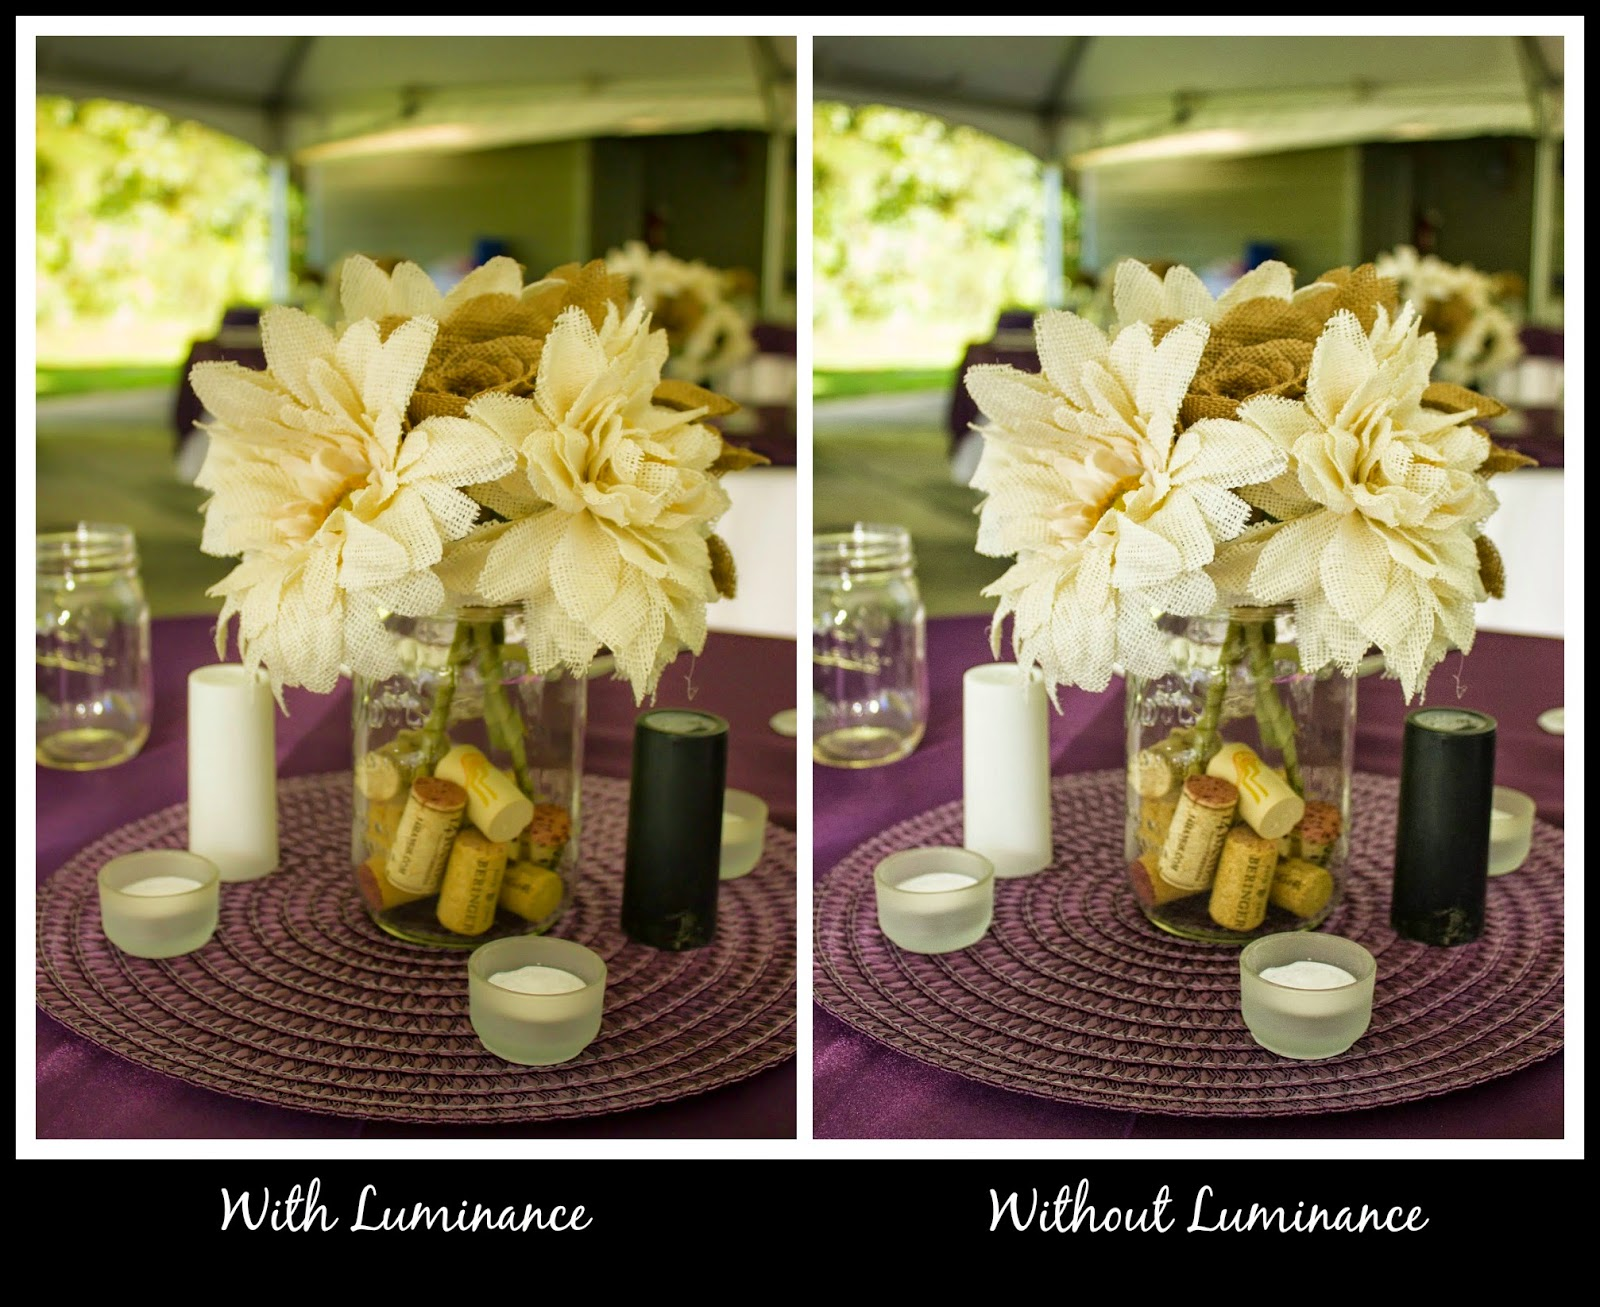 how to use the luminance feature in lightroom, luminance tutorial, beginner lightroom, wedding bouquet, white wedding bouquet, white flowers at wedding, white balance, white balance in lightroom, wedding photography